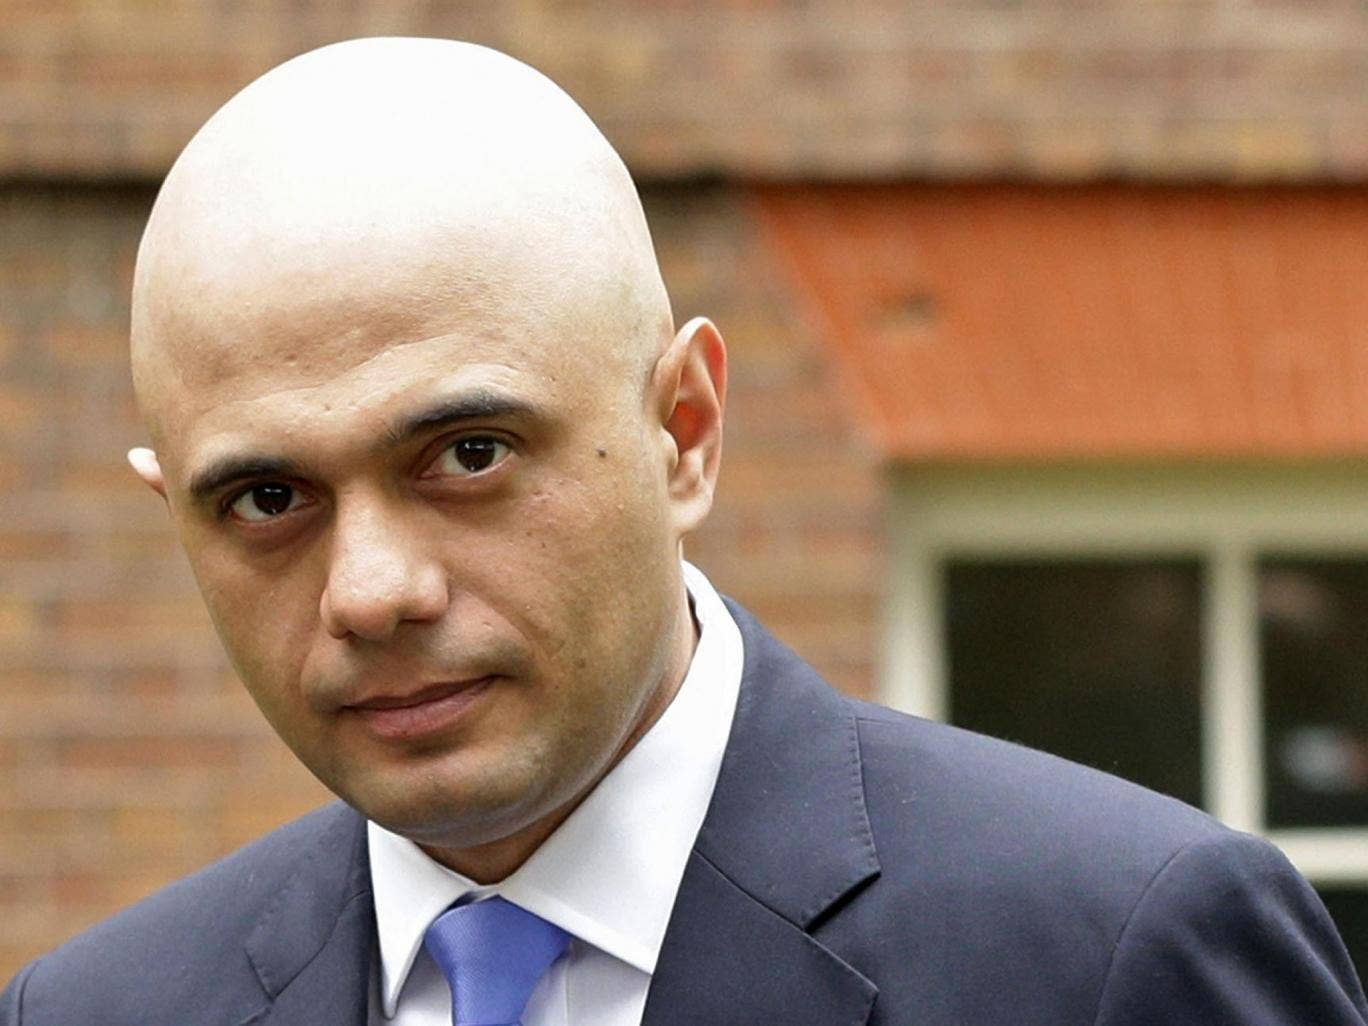 Sajid Javid insisted the Prime Minister would adopt a tough stance on the issue in his efforts to repatriate powers from Brussels to London